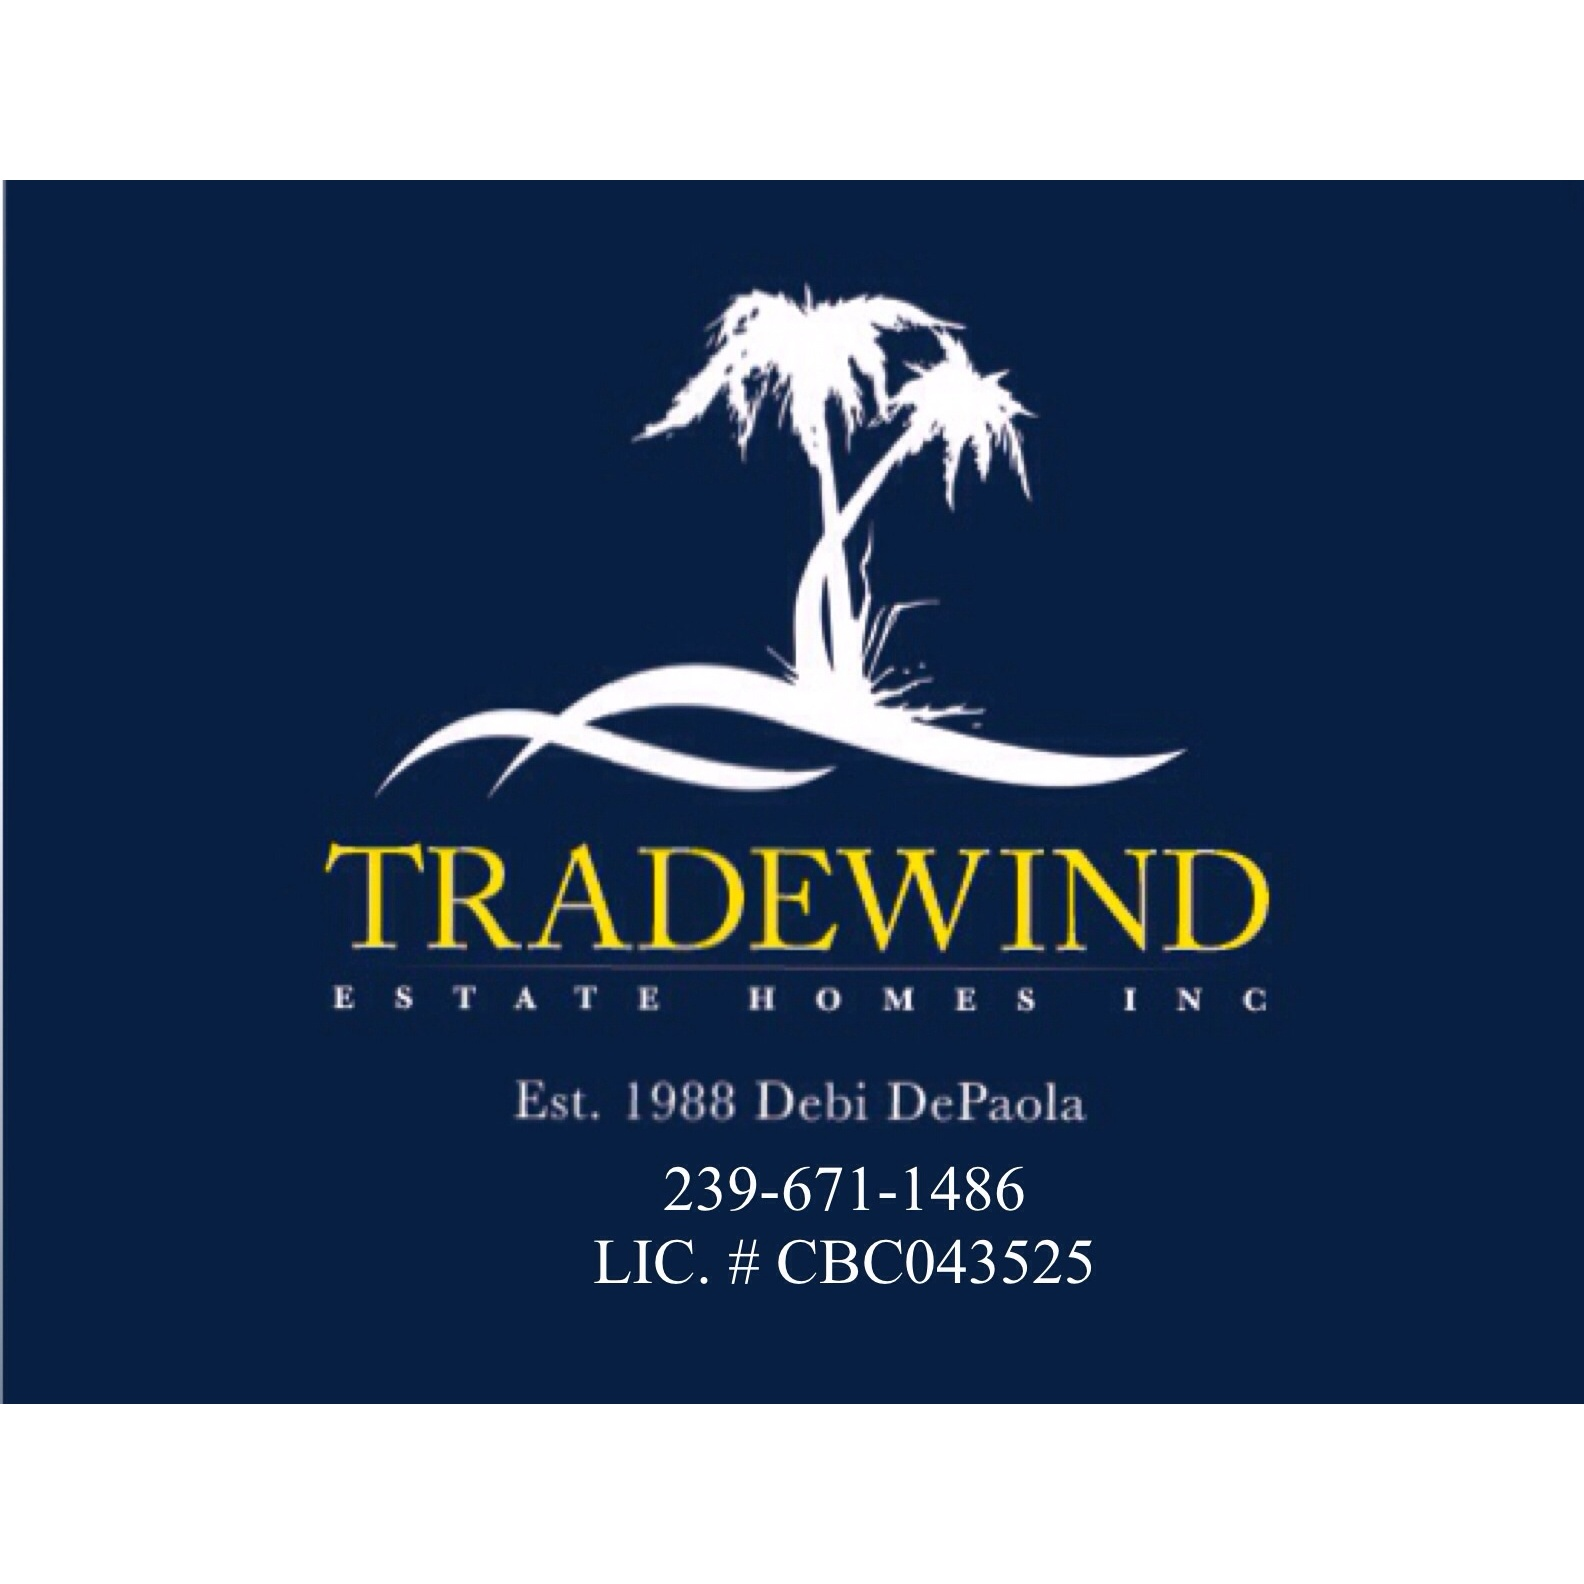 Tradewind Estate Homes, Inc.